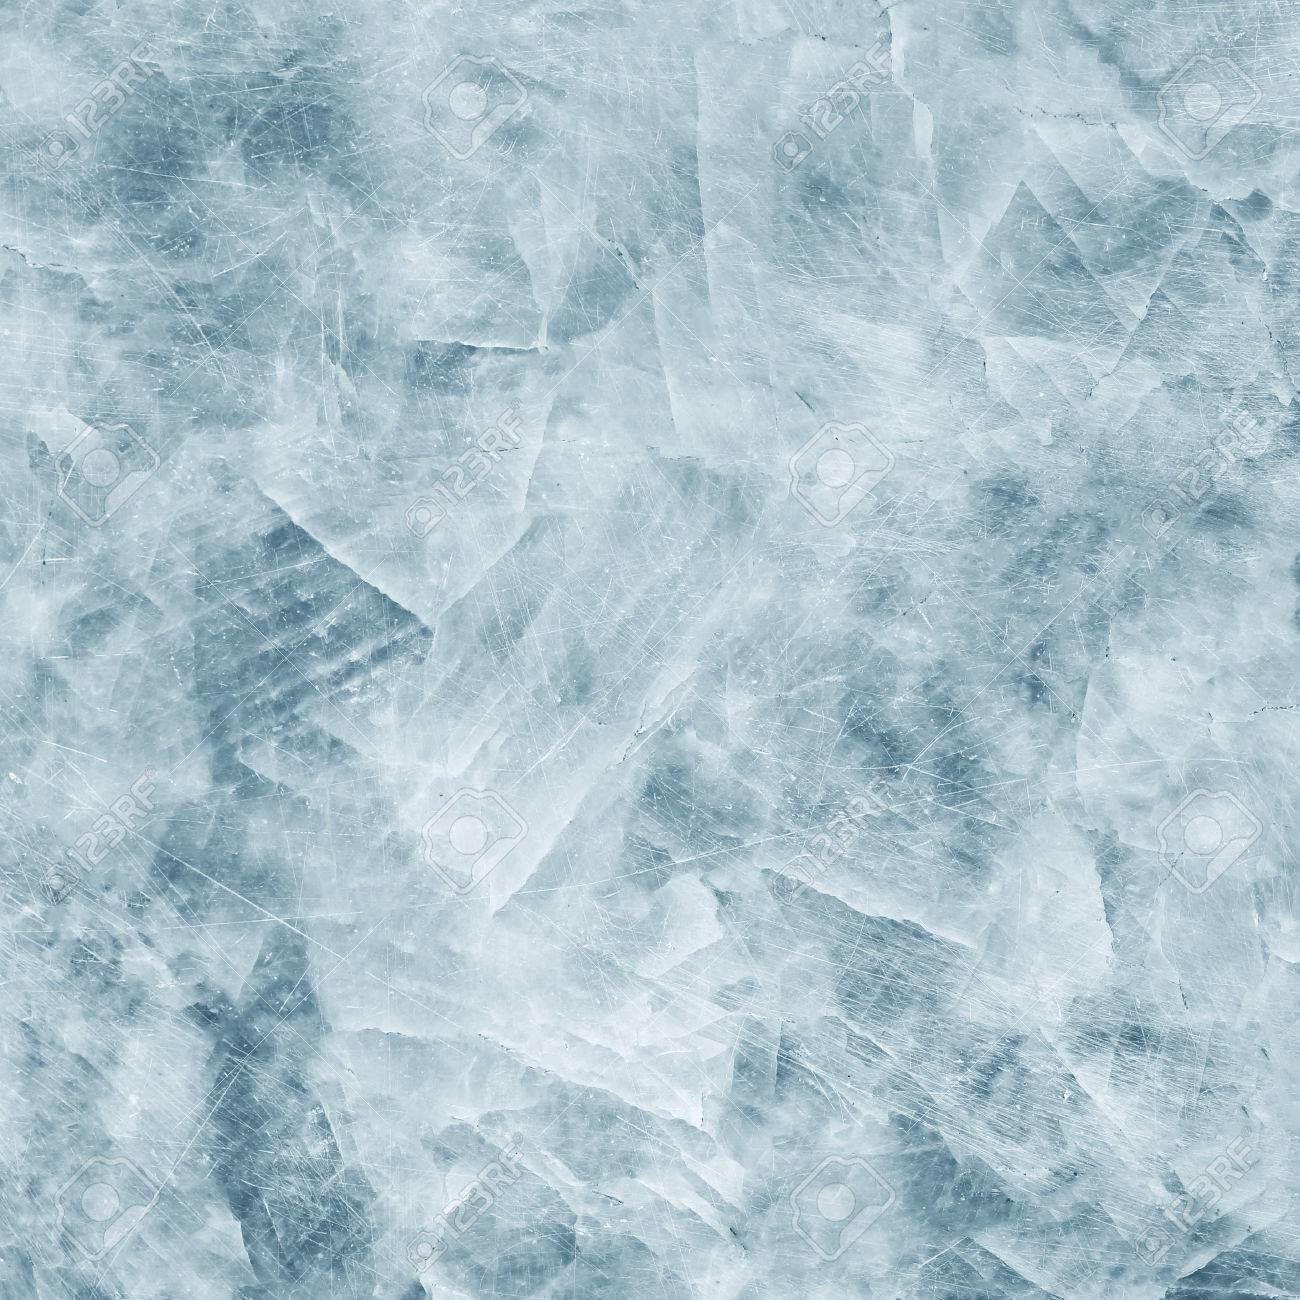 Marble Texture White Marble Background Stock Photo Picture And Royalty Free Image Image 53211740